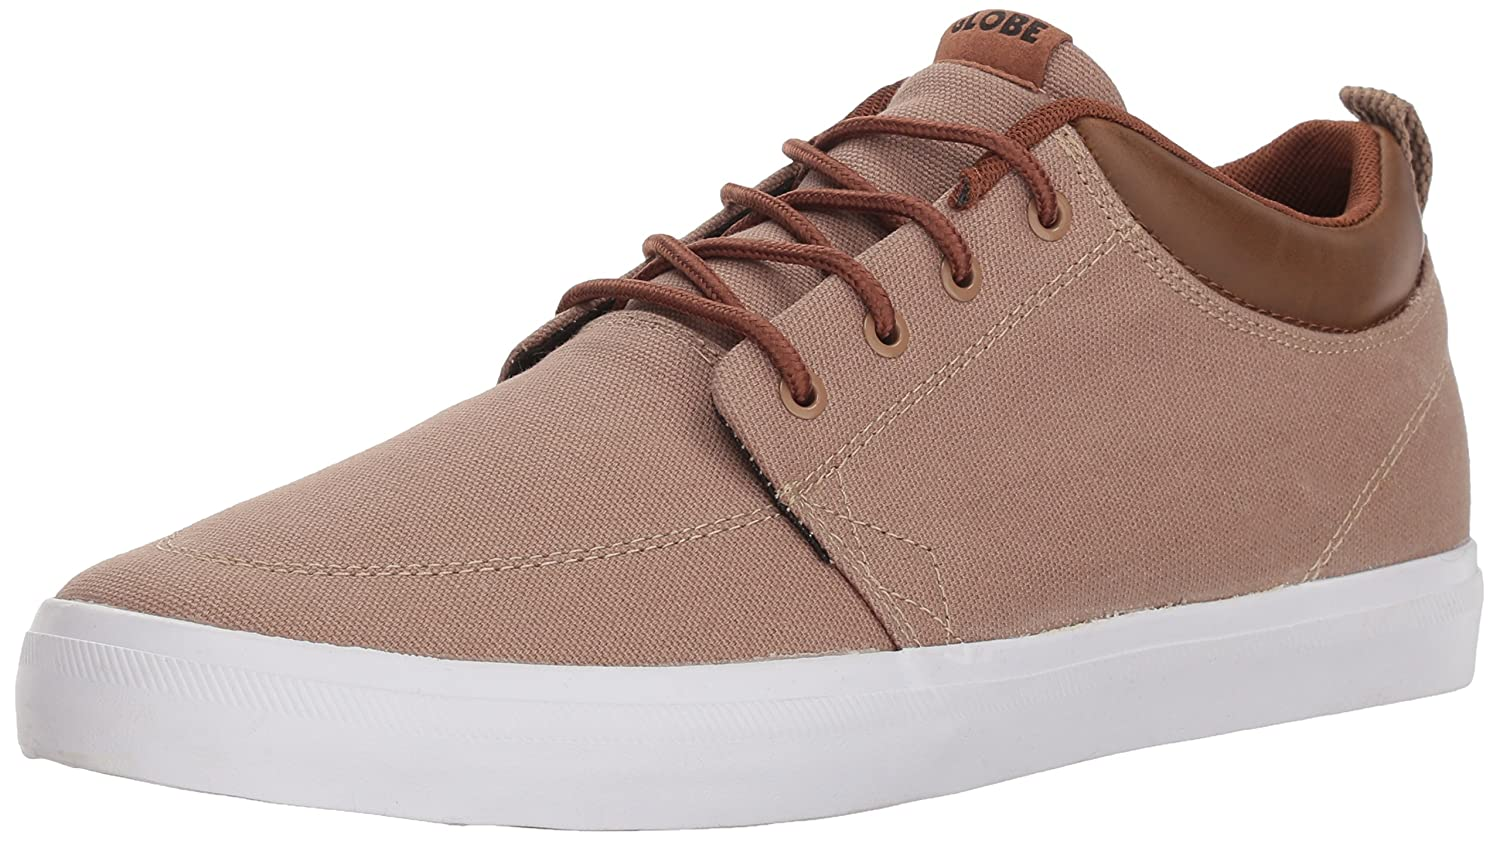 camel shoes outdoor women unlimited facebook globe 689866